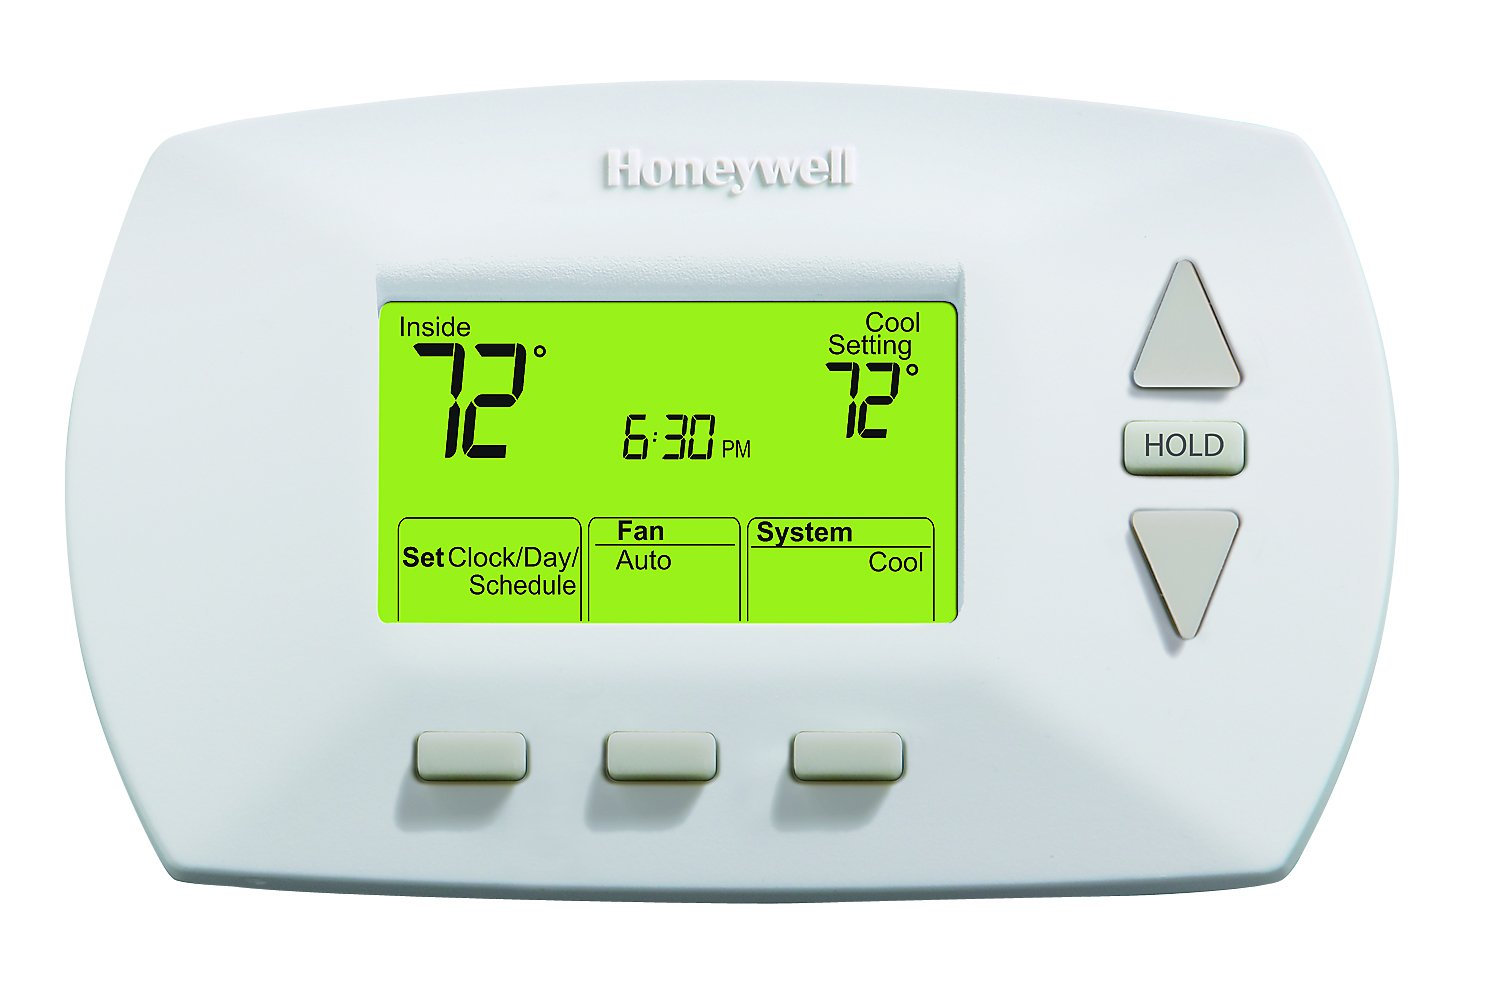 Honeywell RTH6450D1009/E1 RTH6450D1009 5-1-1-Day Programmable Thermostat, White by Honeywell